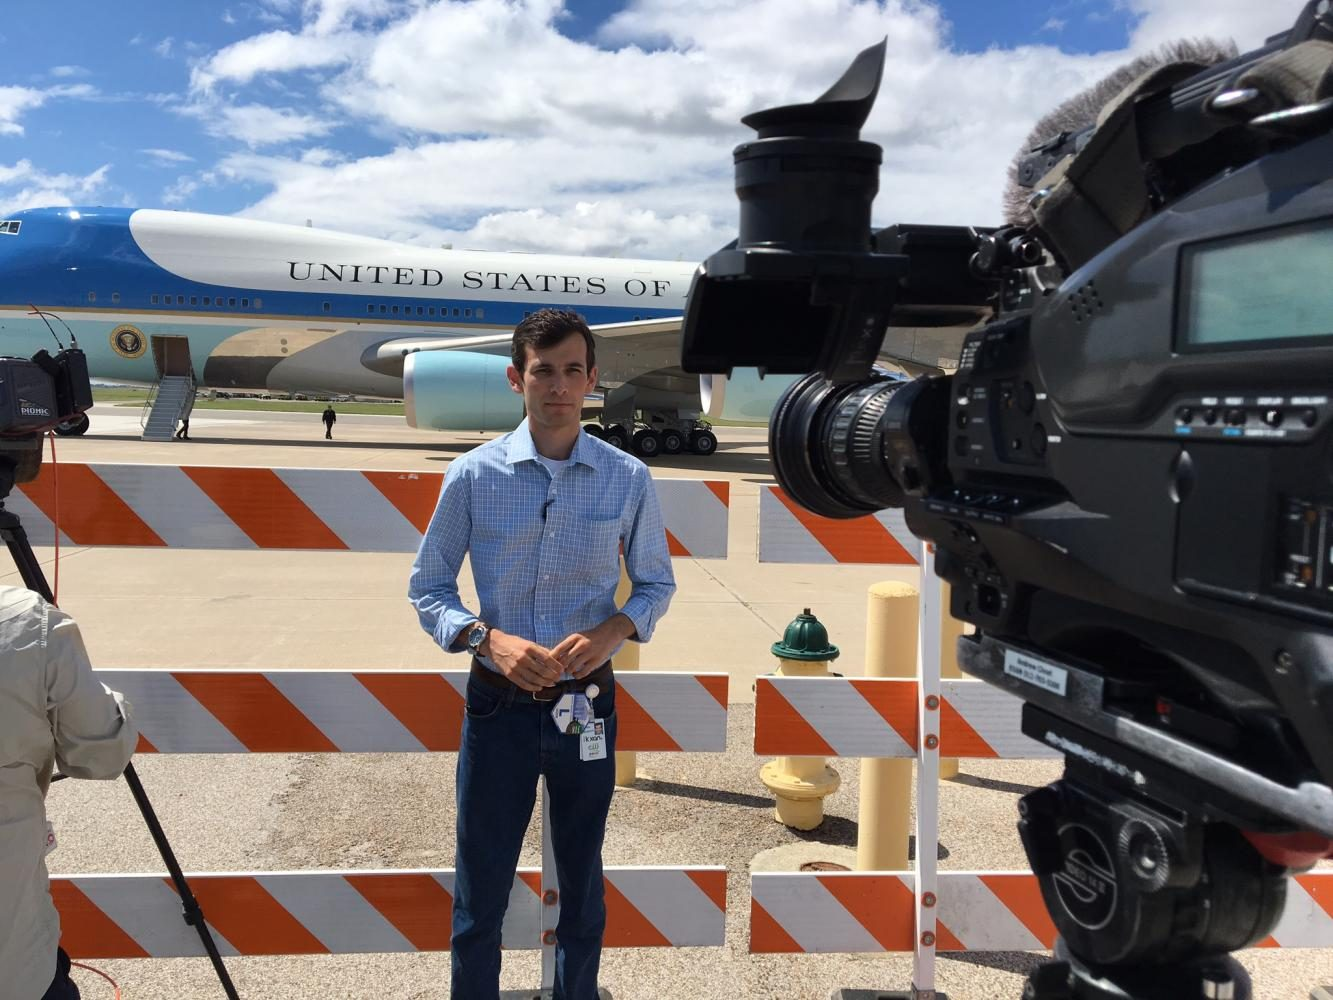 Capitol Correspondent at Nexstar Austin Bureau Wes Rapaport reports on President Trumps visit to Corpus Christi at the Corpus Christi International Airport. Trump arrived to meet with local and state officials on Tuesday.